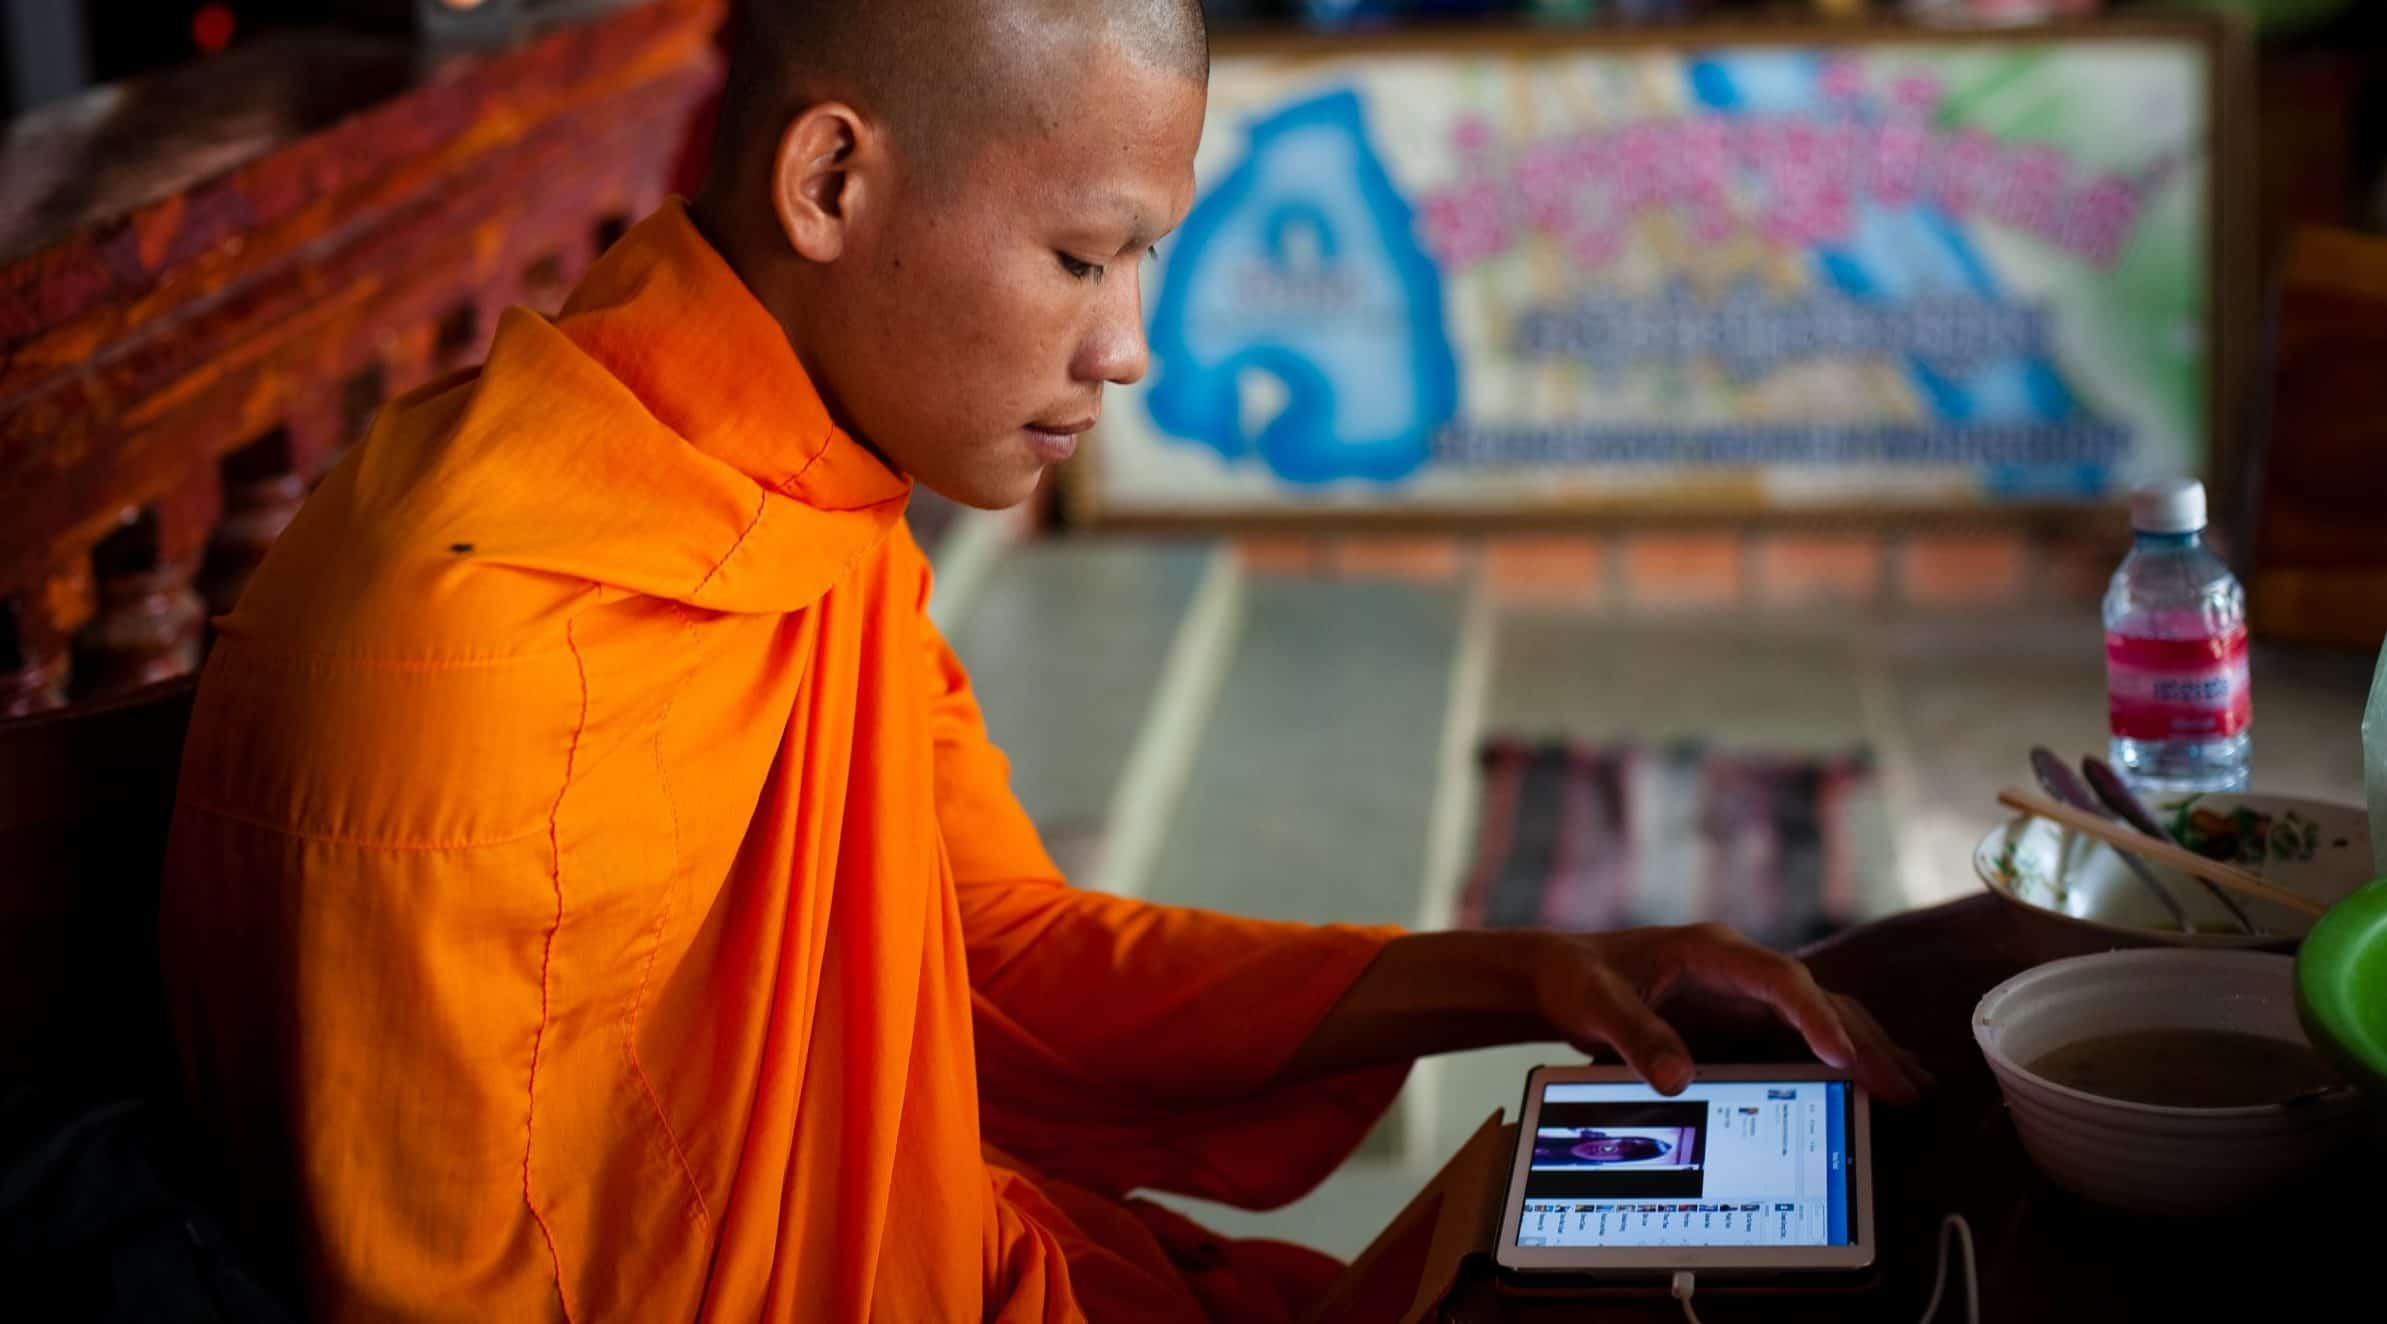 A man wearing an orange robe holds a tablet